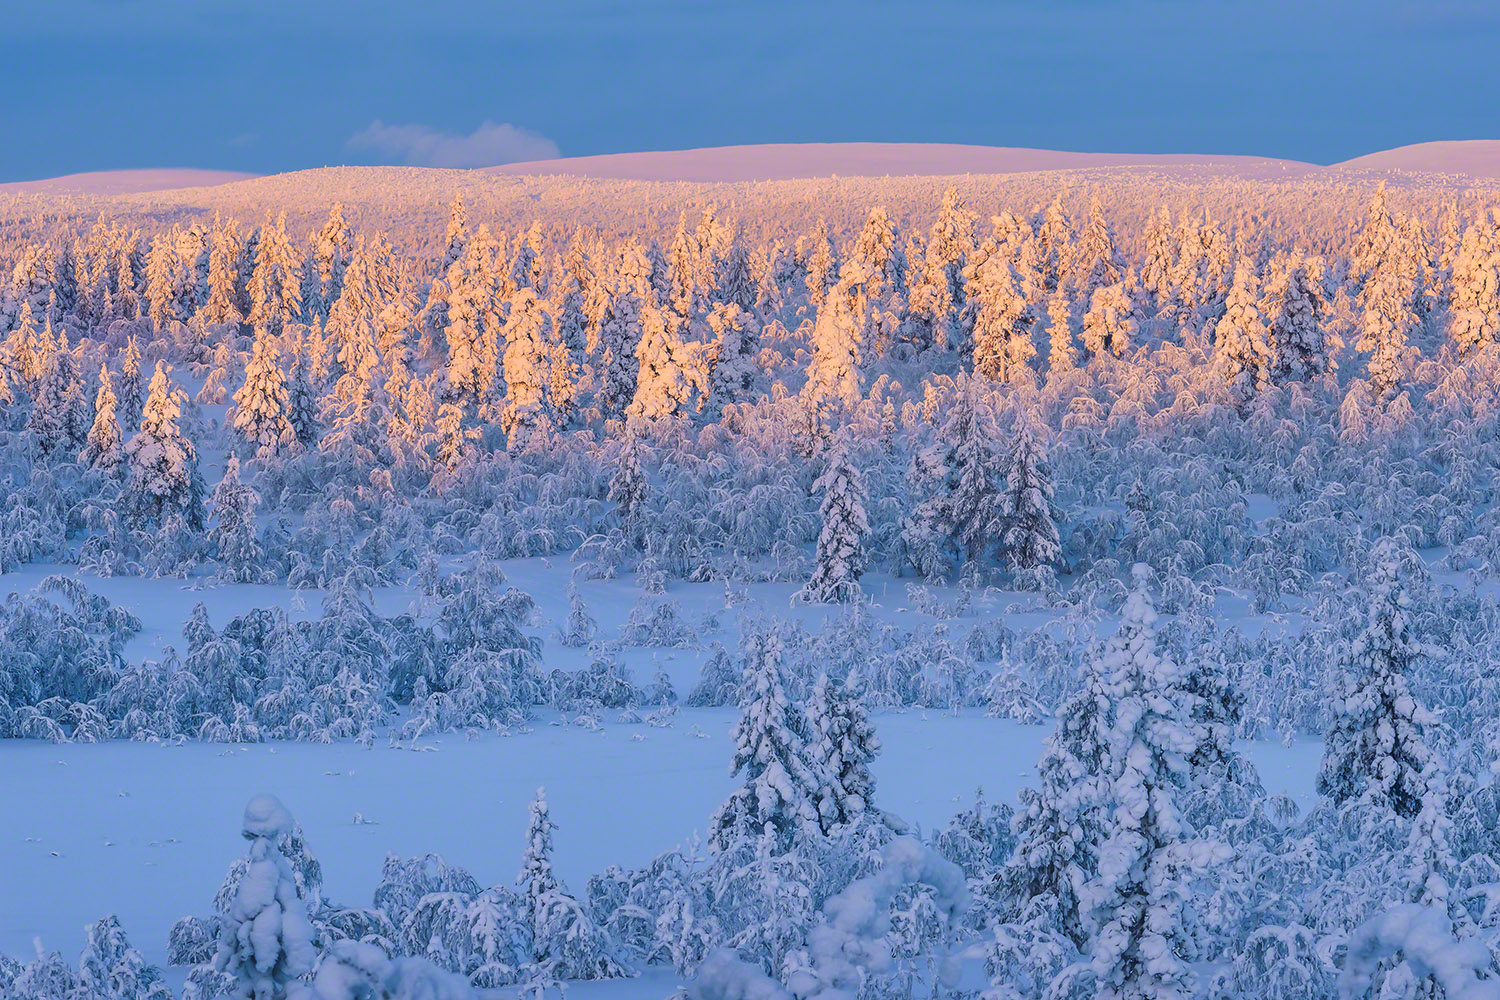 Winter sunset photography. Snow covered trees in Lapland, Finland